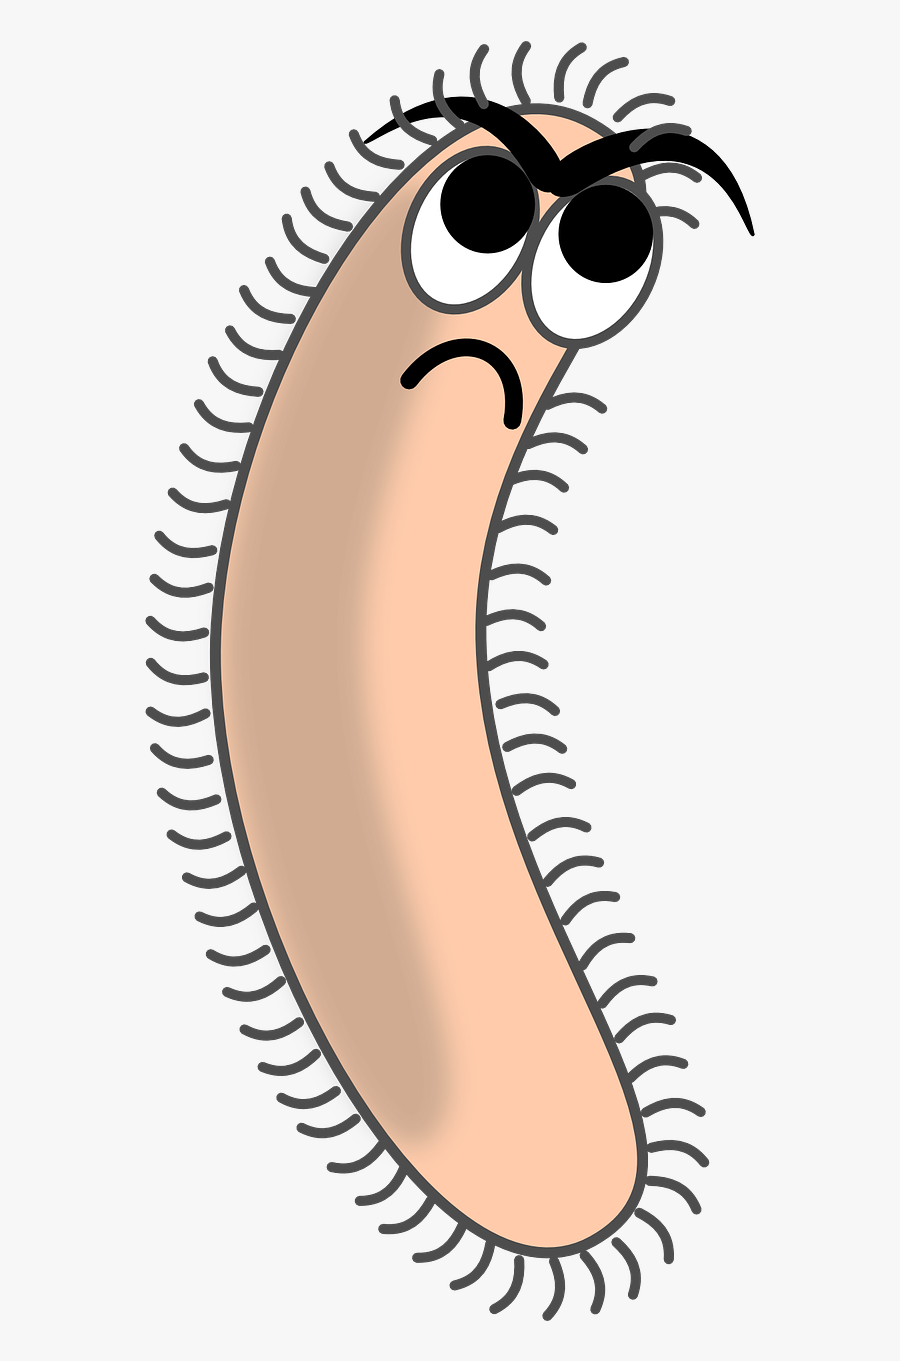 Bacteria Germ Pathogene Cell Png Image.